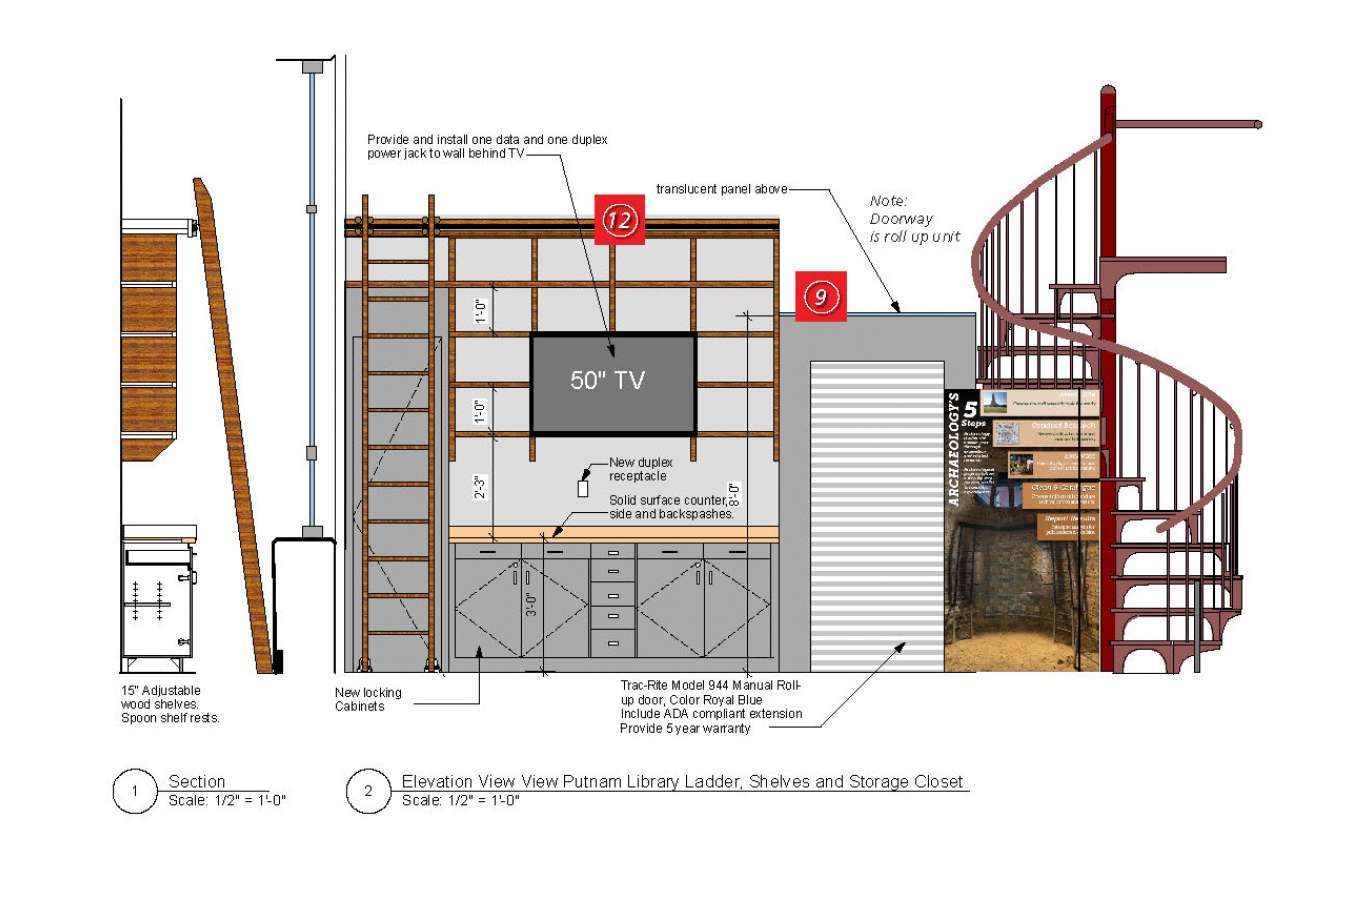 5 CAAM 7-16 12x9 Page_35 : Storage area behind stairs with steel retractable door, graphics align with stair risers